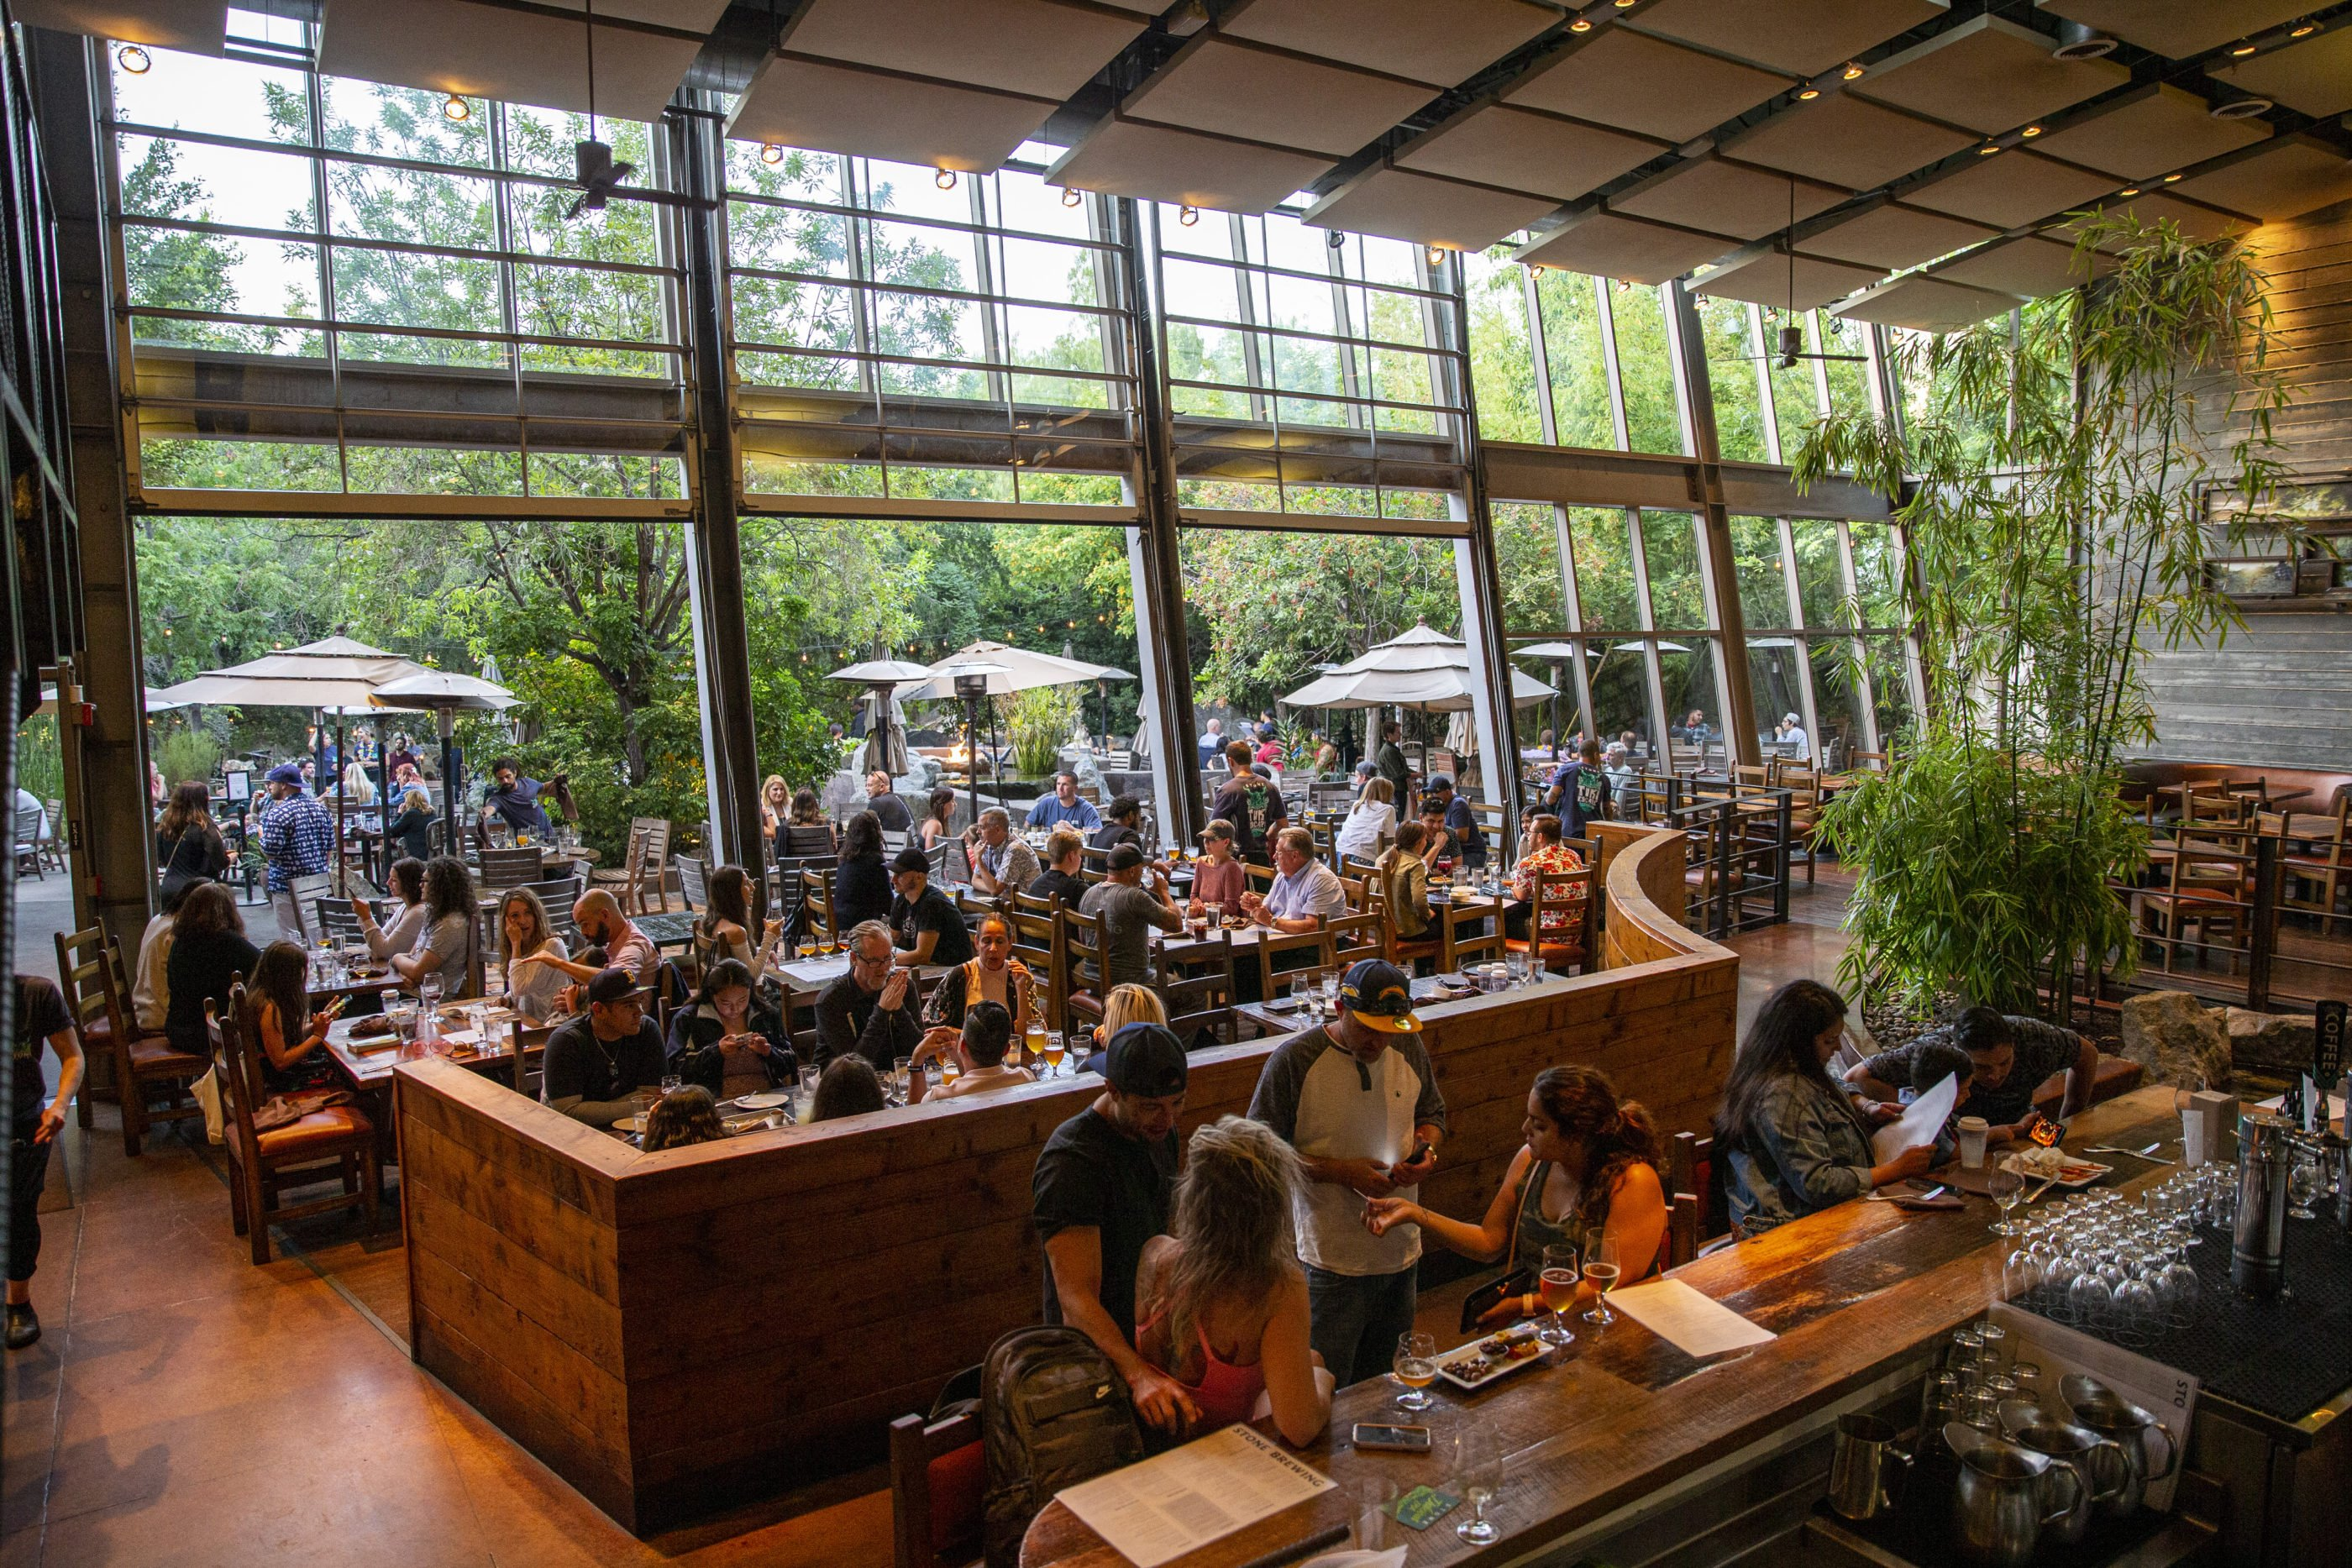 People gathered at the bar and seated at indoor and outdoor tables on a busy day at Stone Brewing.